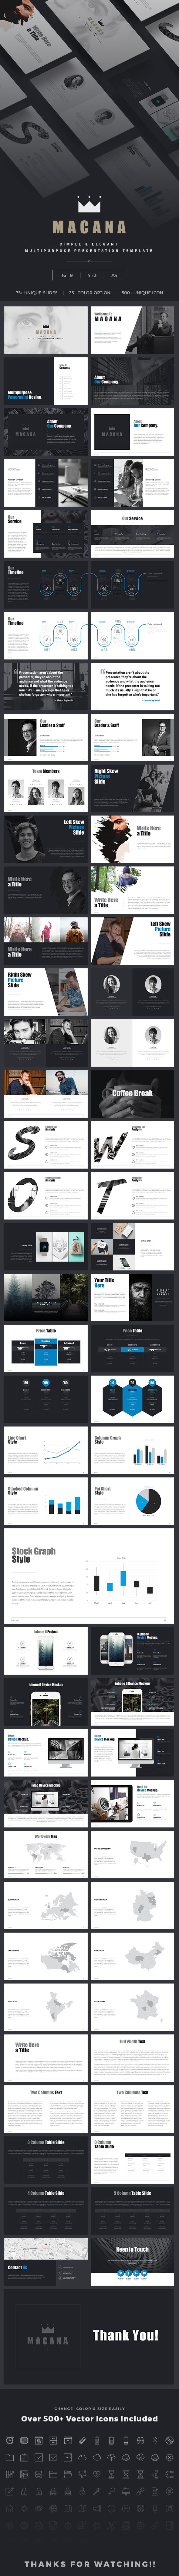 1000 images about powerpoint powerpoint clean powerpoint presentation template best ever simple powerpoint presentation template based on real topics super